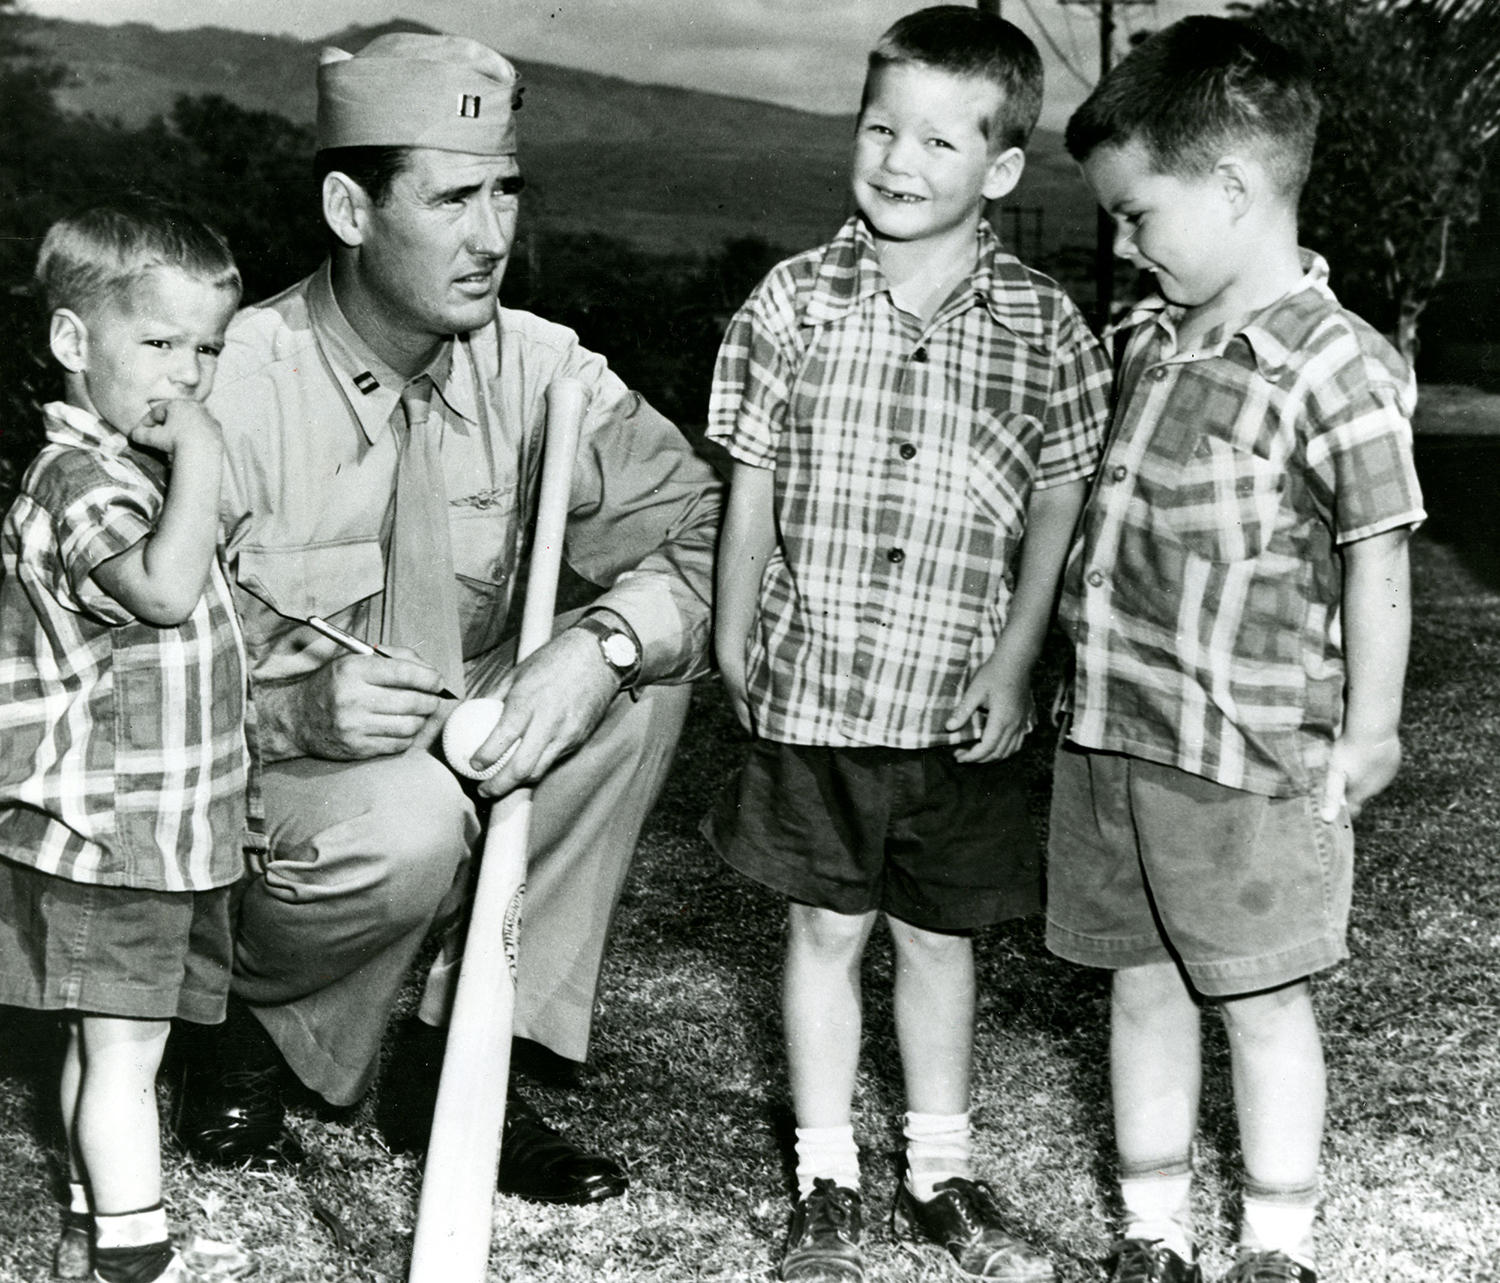 """Ted Williams signs autographs for some young fans while in Honolulu in 1953, en route to Korea. <a href=""""http://collection.baseballhall.org/islandora/object/islandora%3A501812"""">PASTIME</a> (National Baseball Hall of Fame)"""